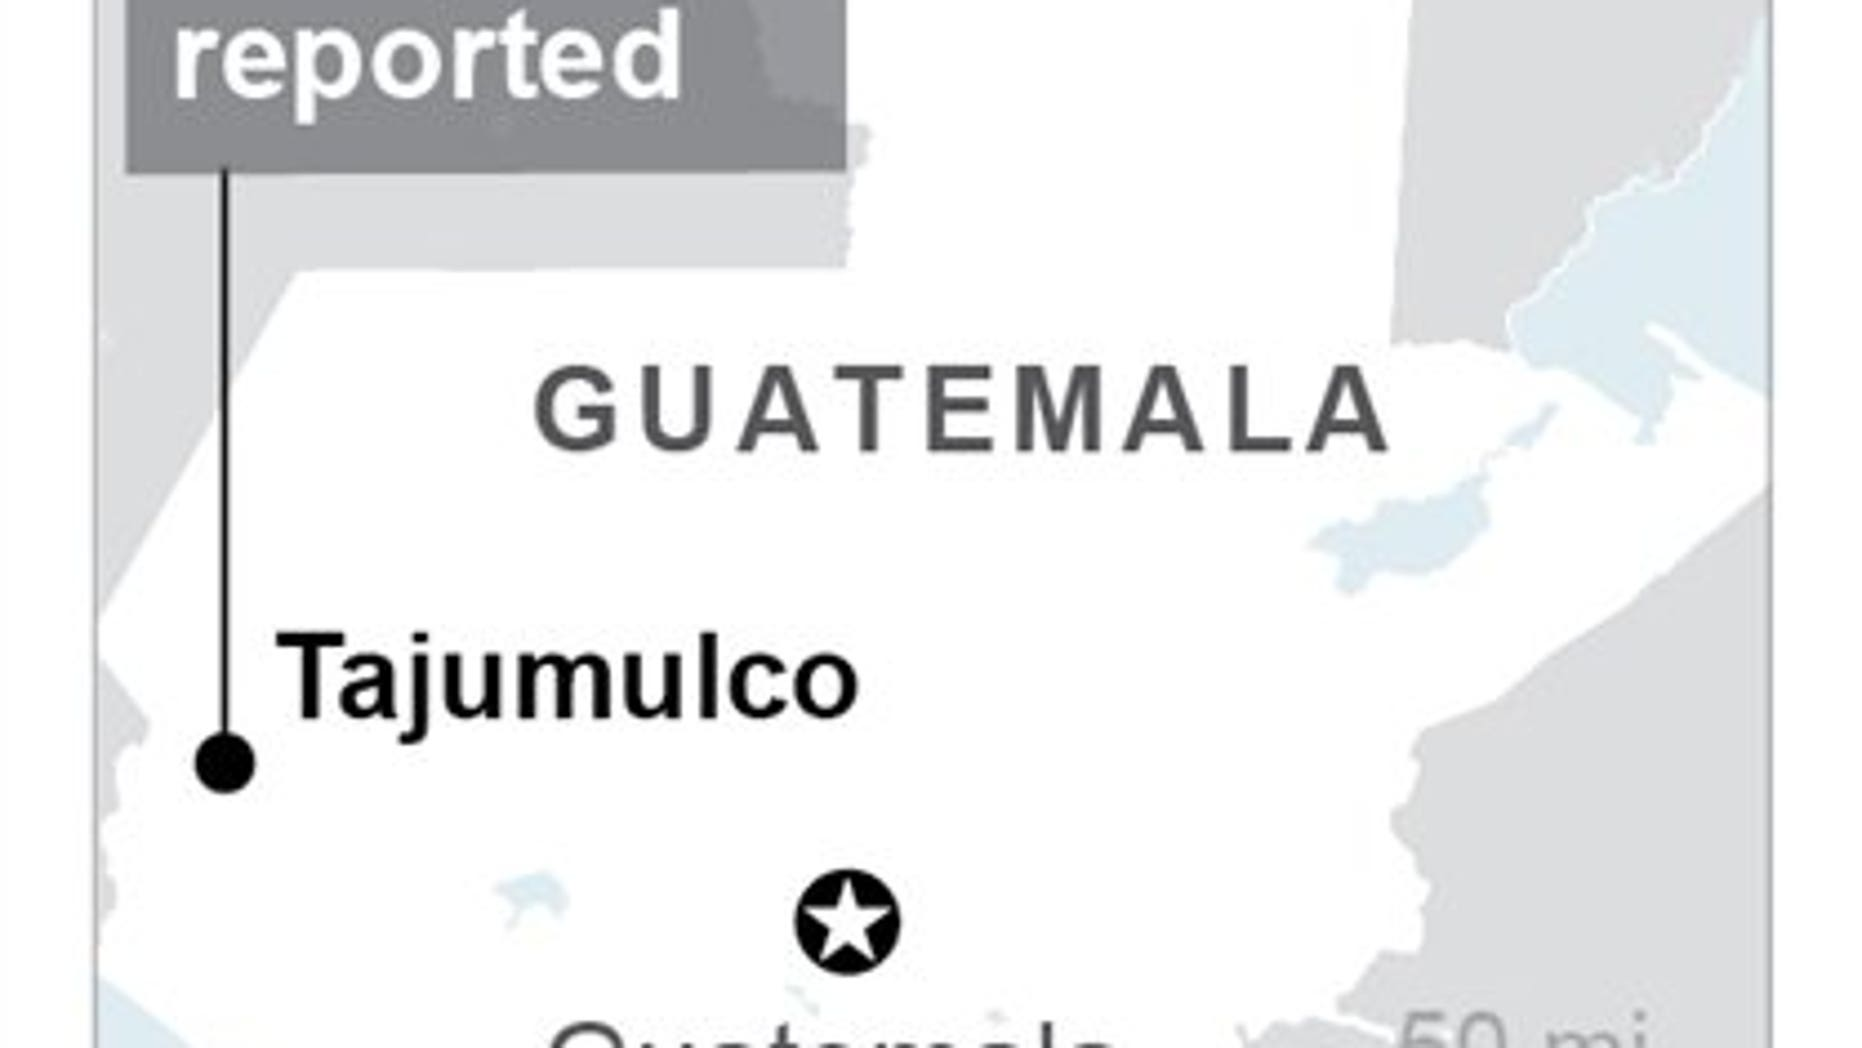 A 6.9-magnitude earthquake struck Tajumulco, Guatemala on Wednesday. (Associated Press)